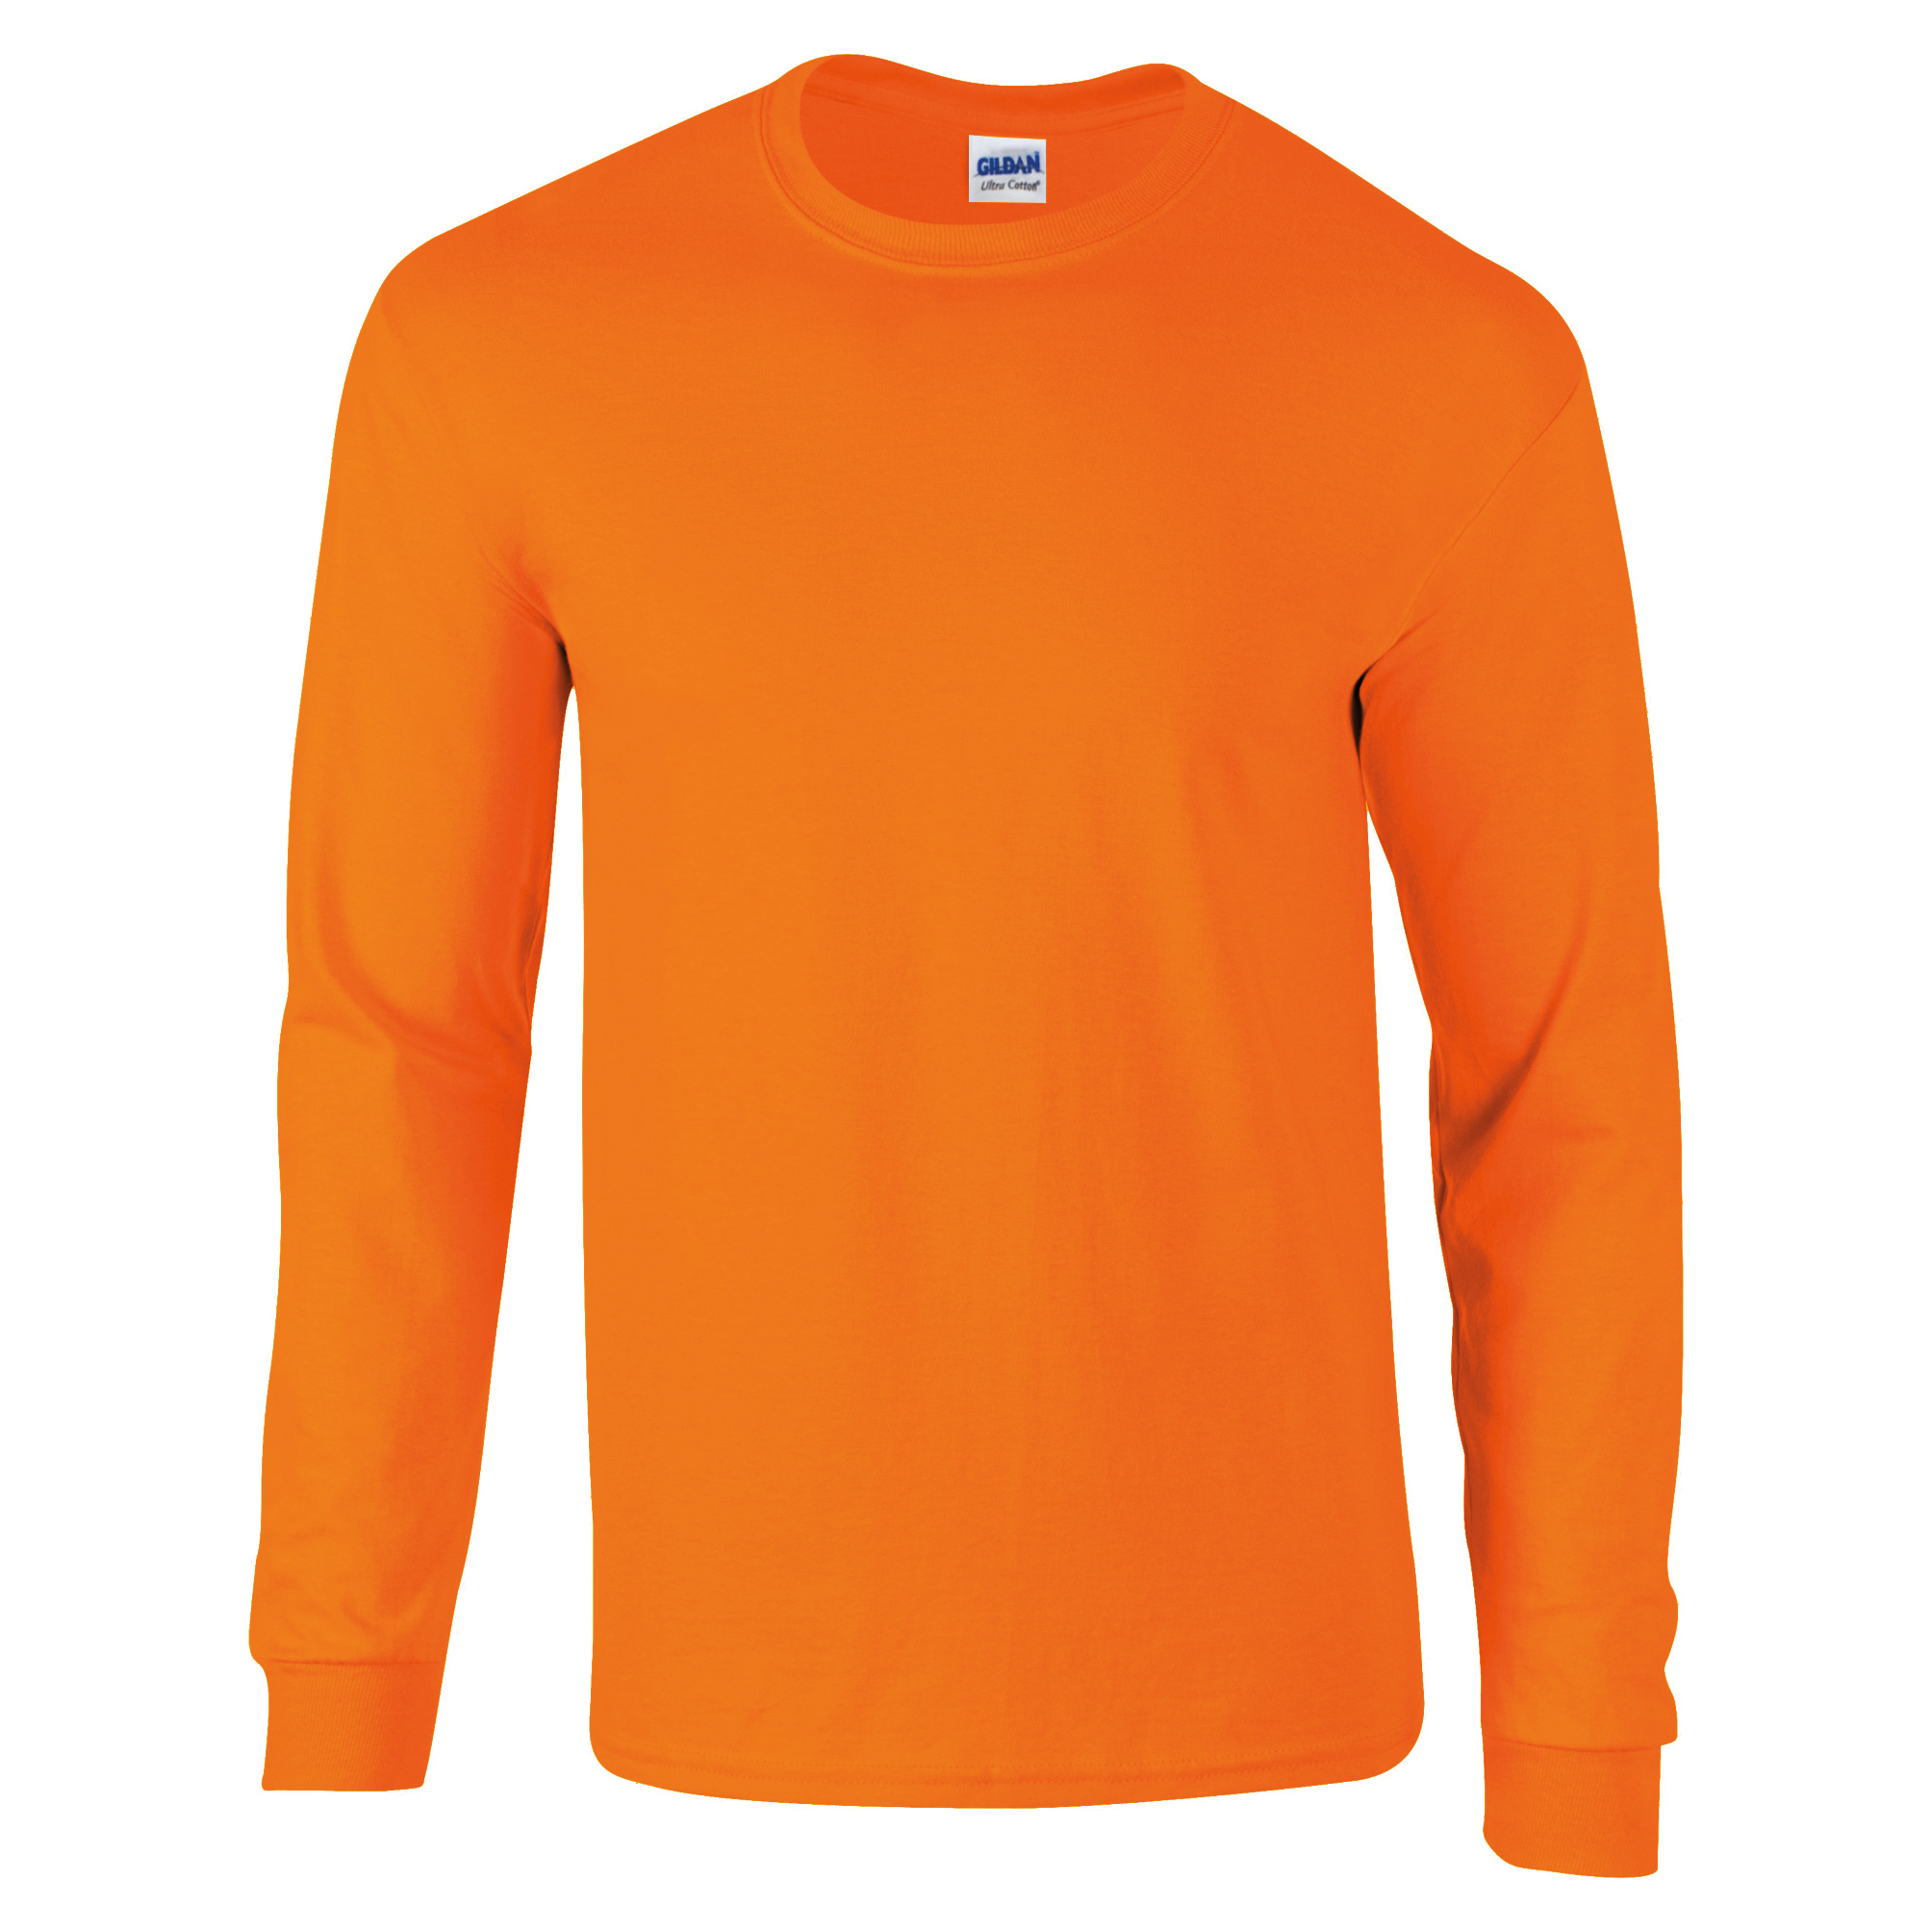 Gildan ultra cotton mens long sleeve crew neck t shirt 100 for Mens 100 cotton long sleeve t shirts